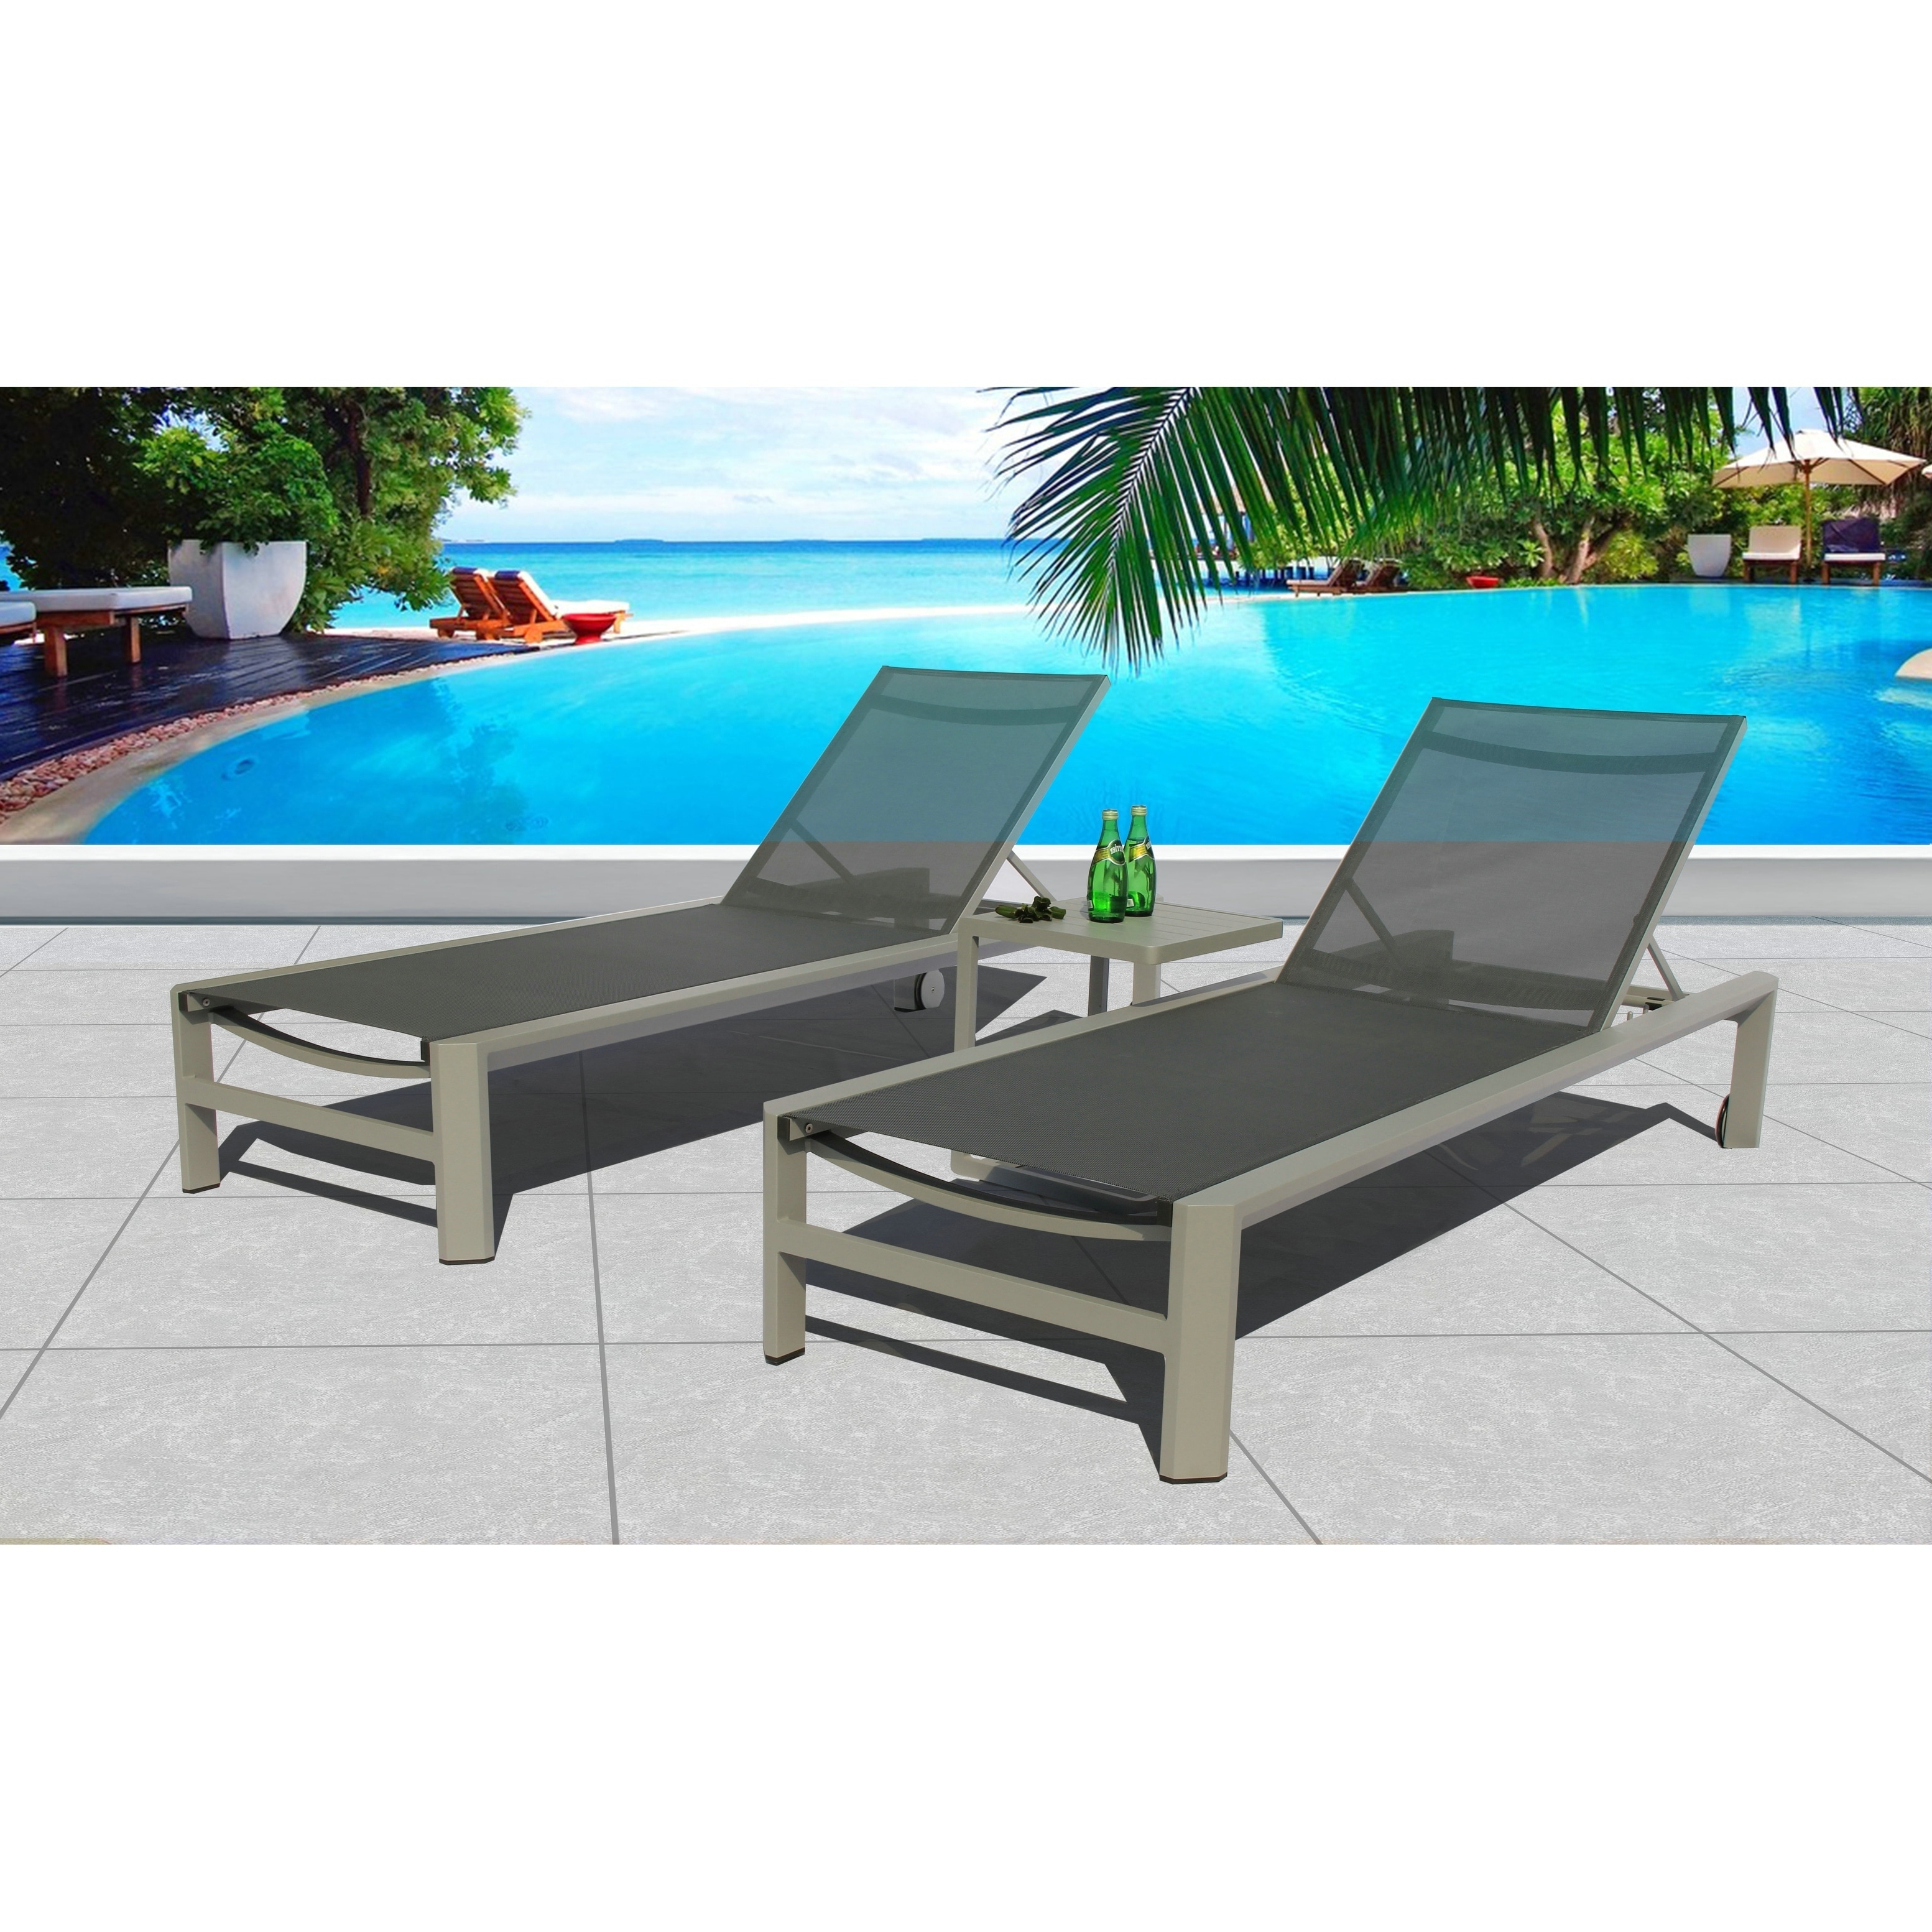 Coast 3 Pc Chaise Lounge Set – Fabric Pewter – N/a, Grey Inside Recent Shore Alumunium Outdoor 3 Piece Chaise Lounger Sets (View 3 of 25)